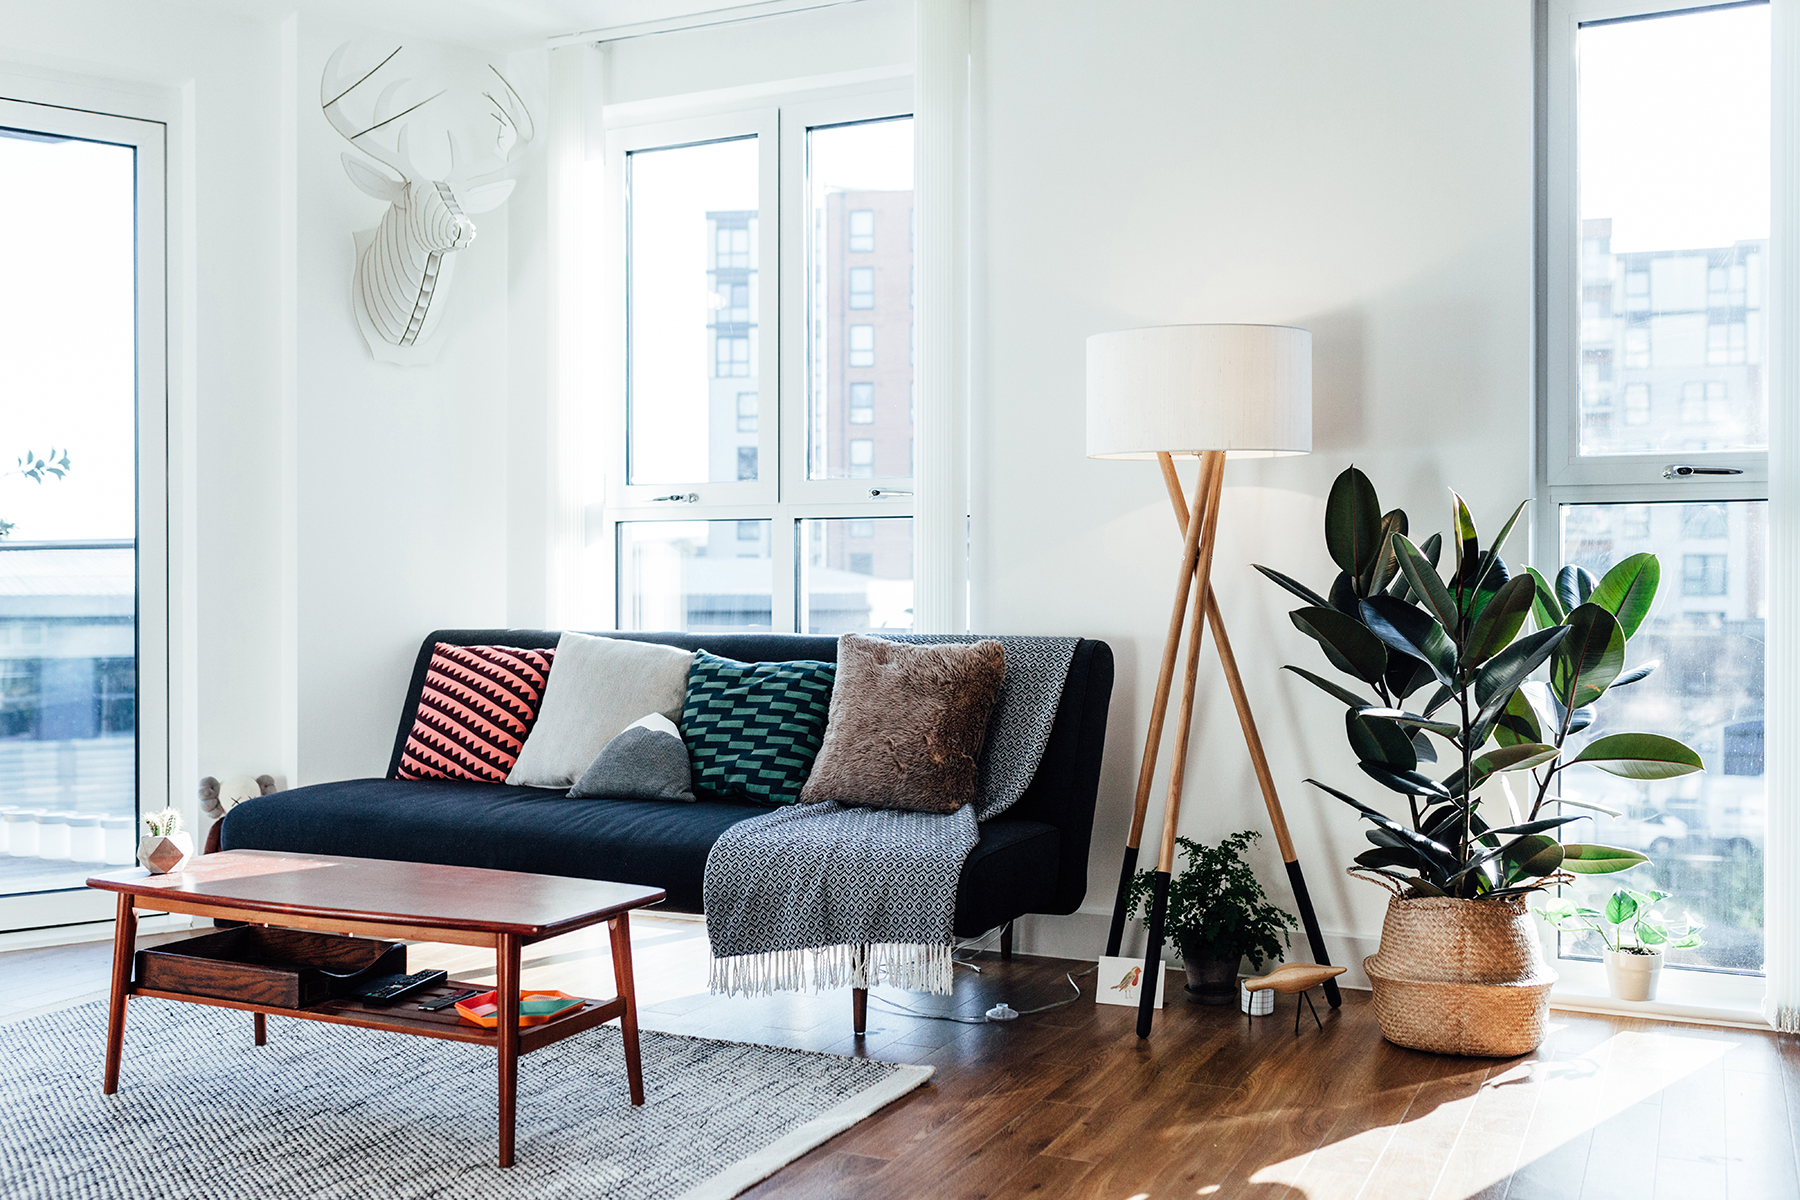 Living room with white walls, gray area rug